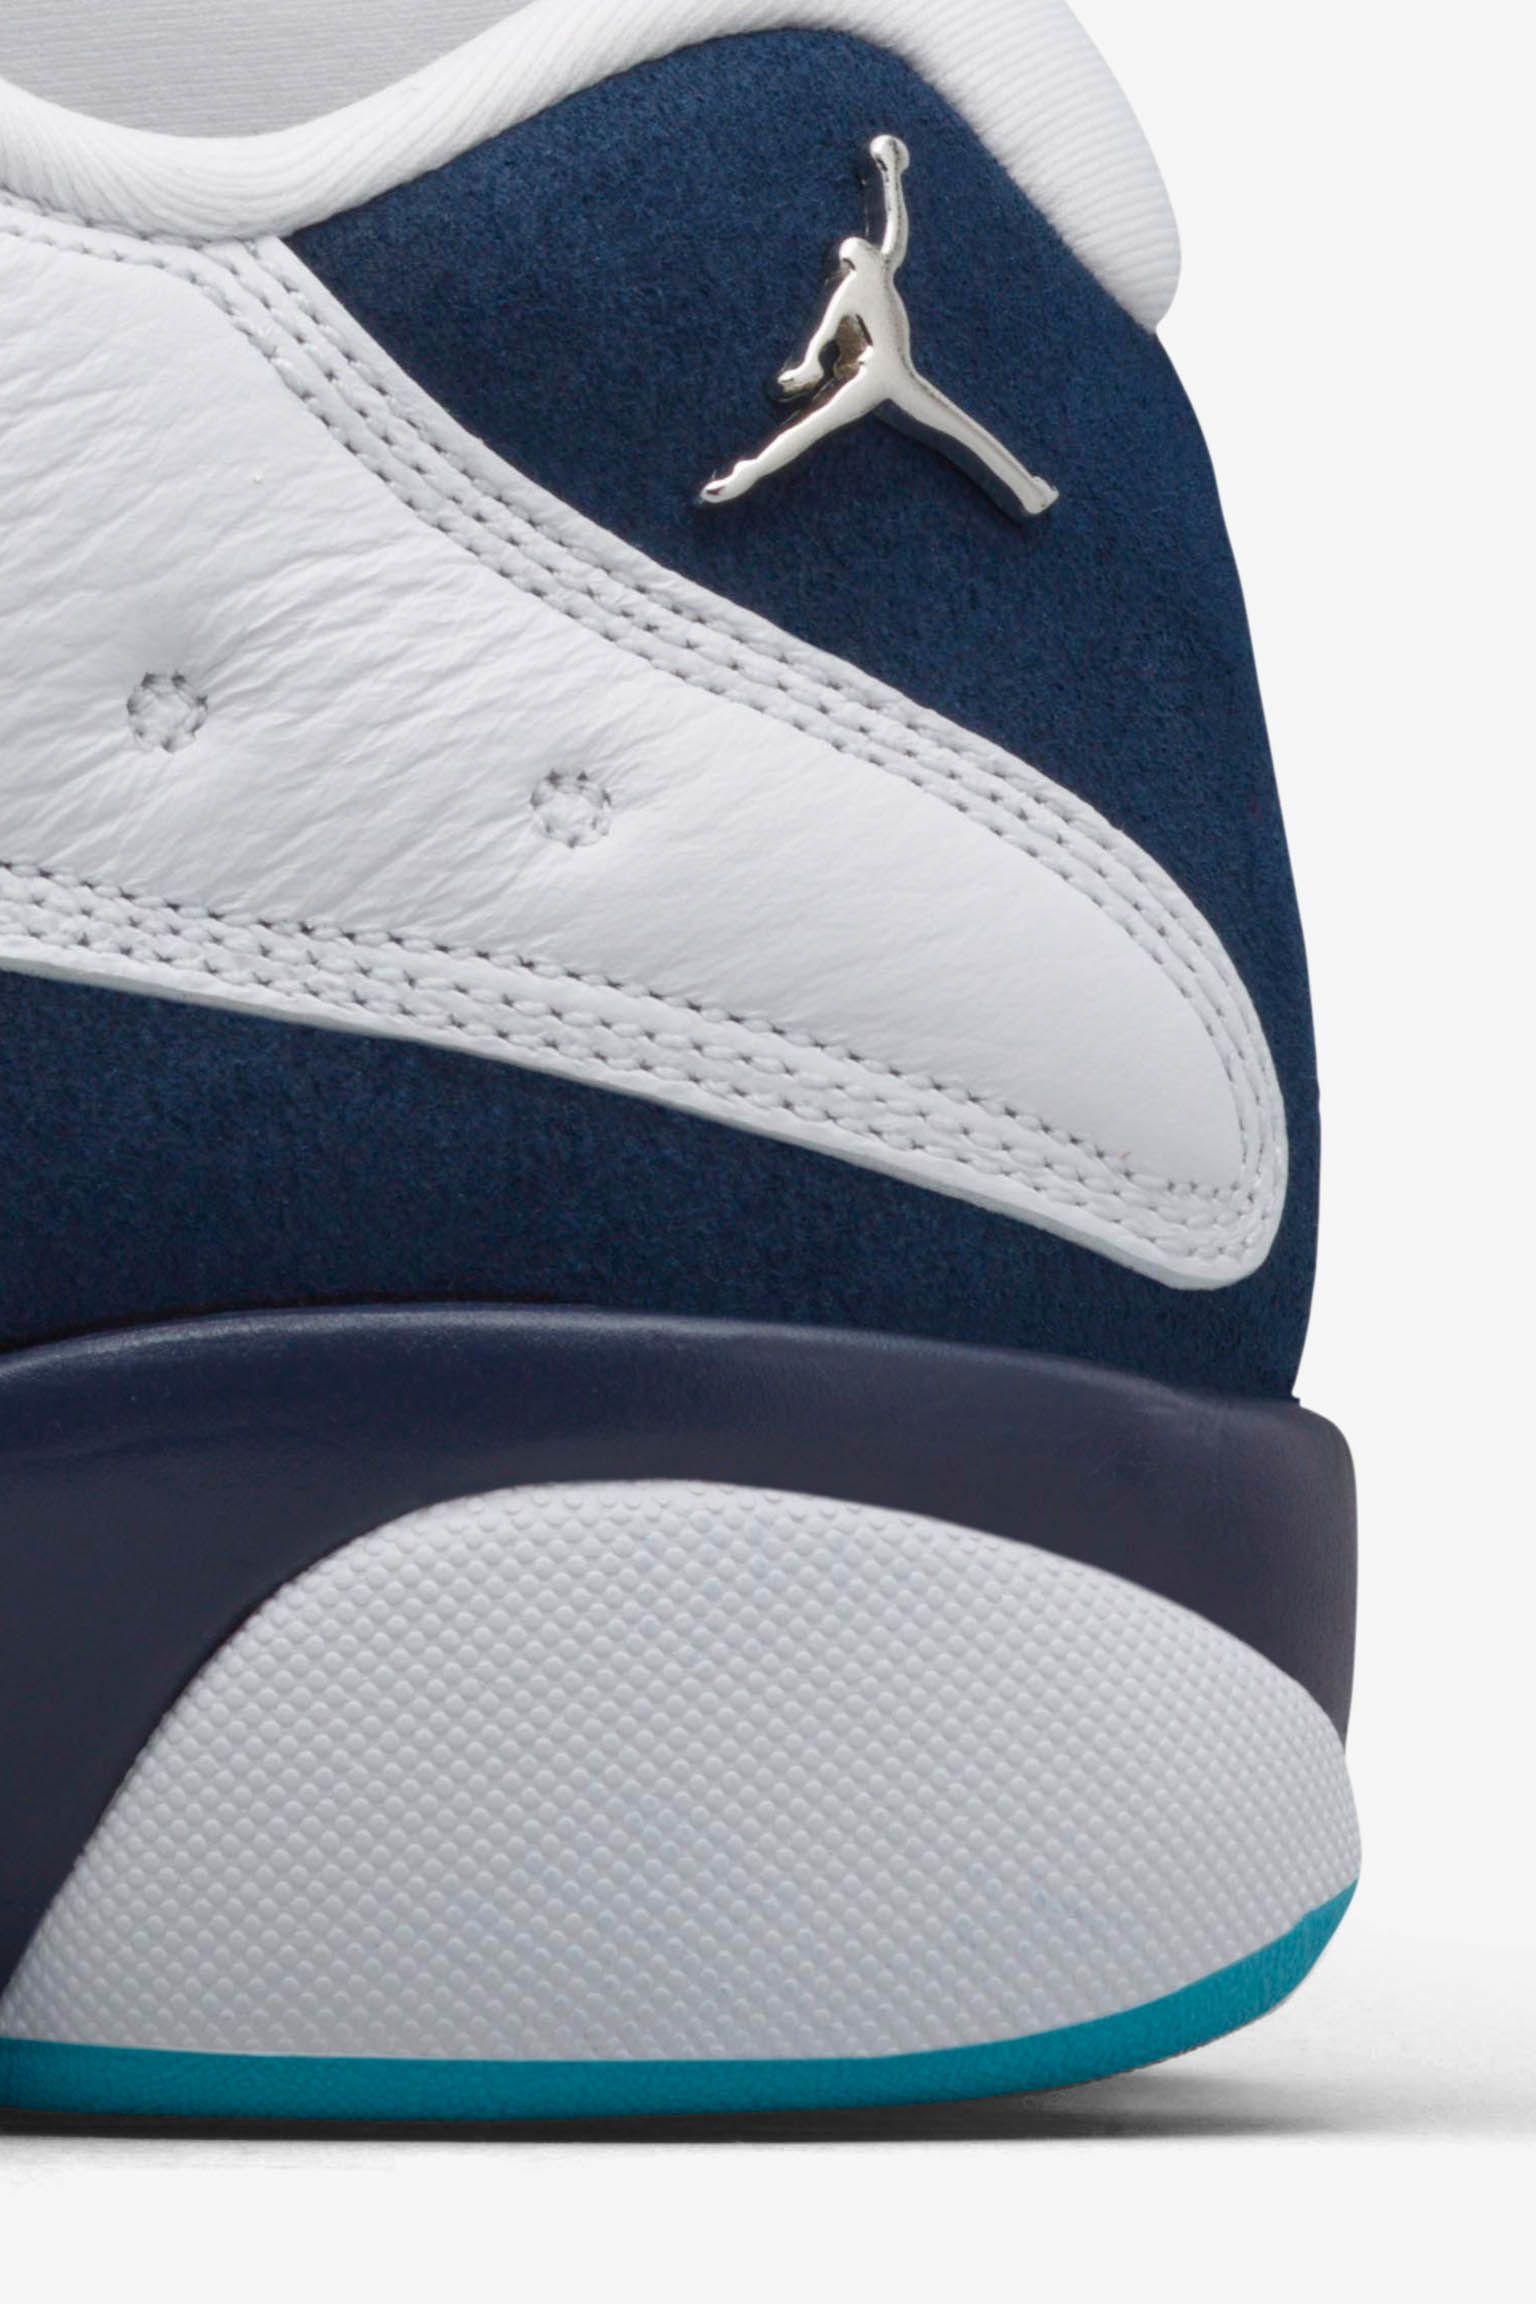 Air Jordan 13 Retro Low 'Midnight Navy' Release Date